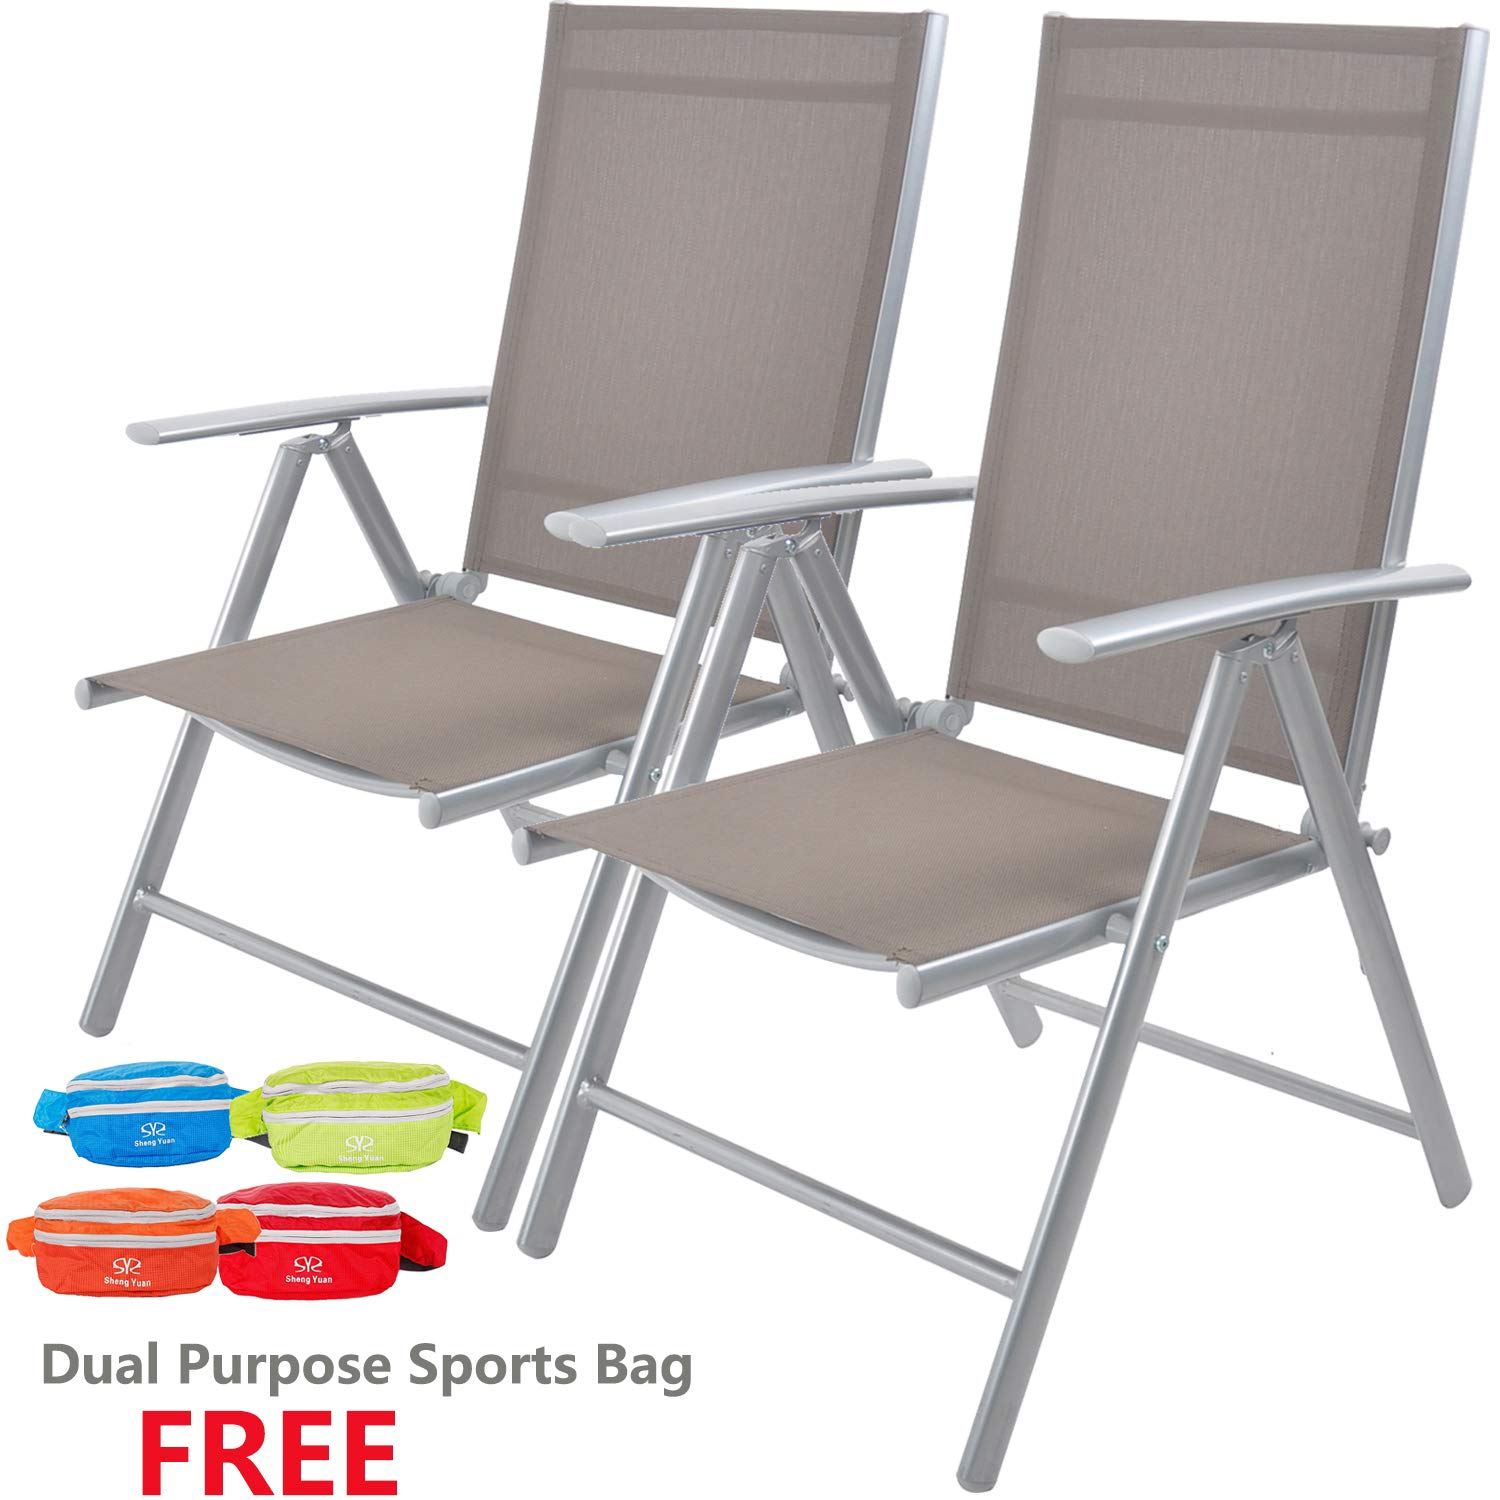 Livebest Set of 2 Folding Sling Back Chairs Patio Adjustable Reclining Back Sturdy Aluminum Frame with Armrest Chair Zero-gravity Indoor Outdoor Garden Pool Bench,Gary by Livebest